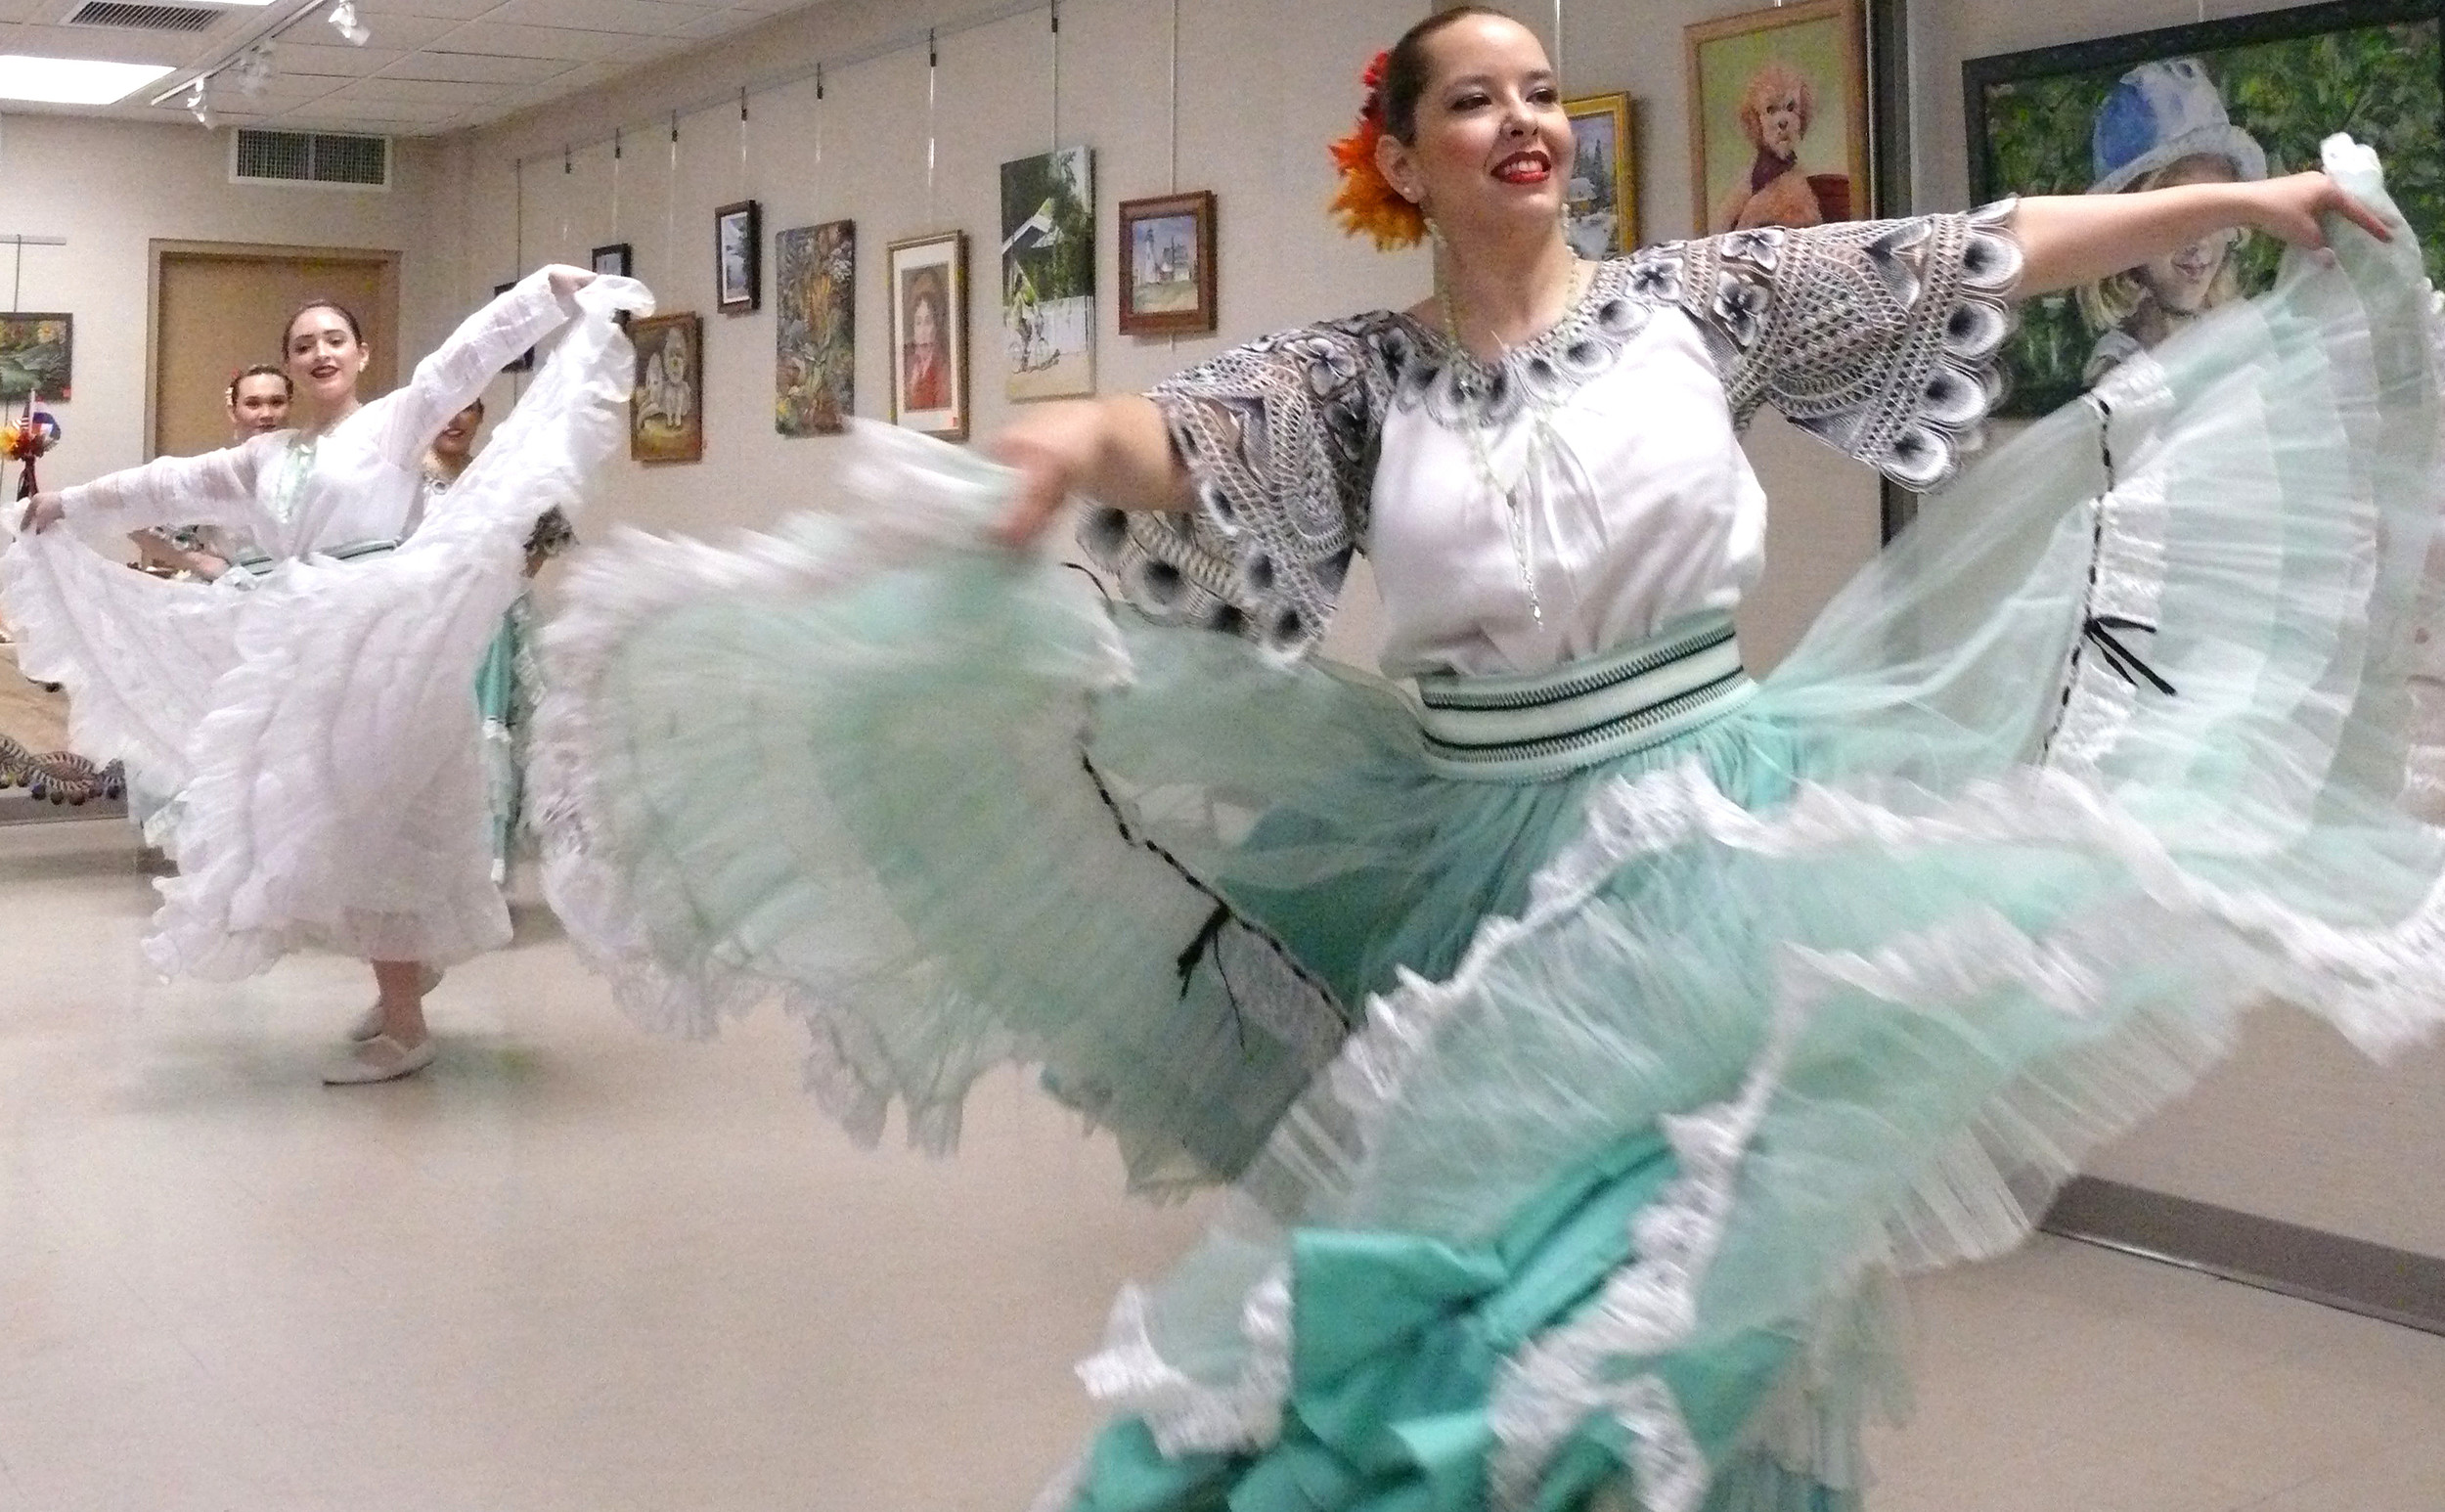 Illiana Gauto and Viviana Vergara, of the dance group Panambi Verá, led a line of dancers and showcased traditional ballet at the East Meadow Public Library on March 11.